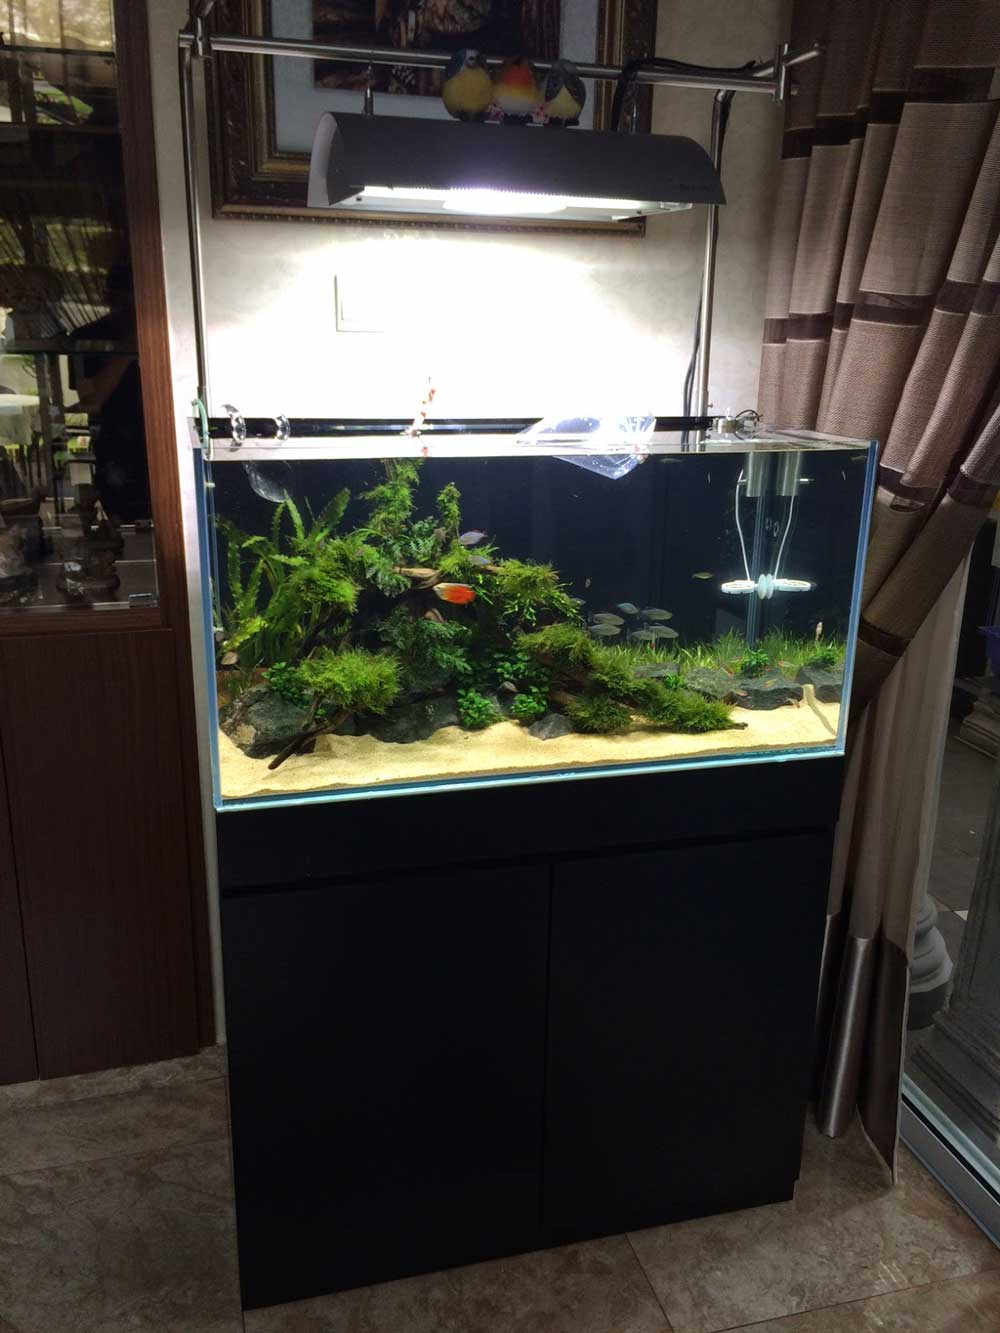 SETTING UP A 3FT PLANTED AQUARIUM FOR OUR CUSTOMER (PART 2) - East Ocean Aquatic